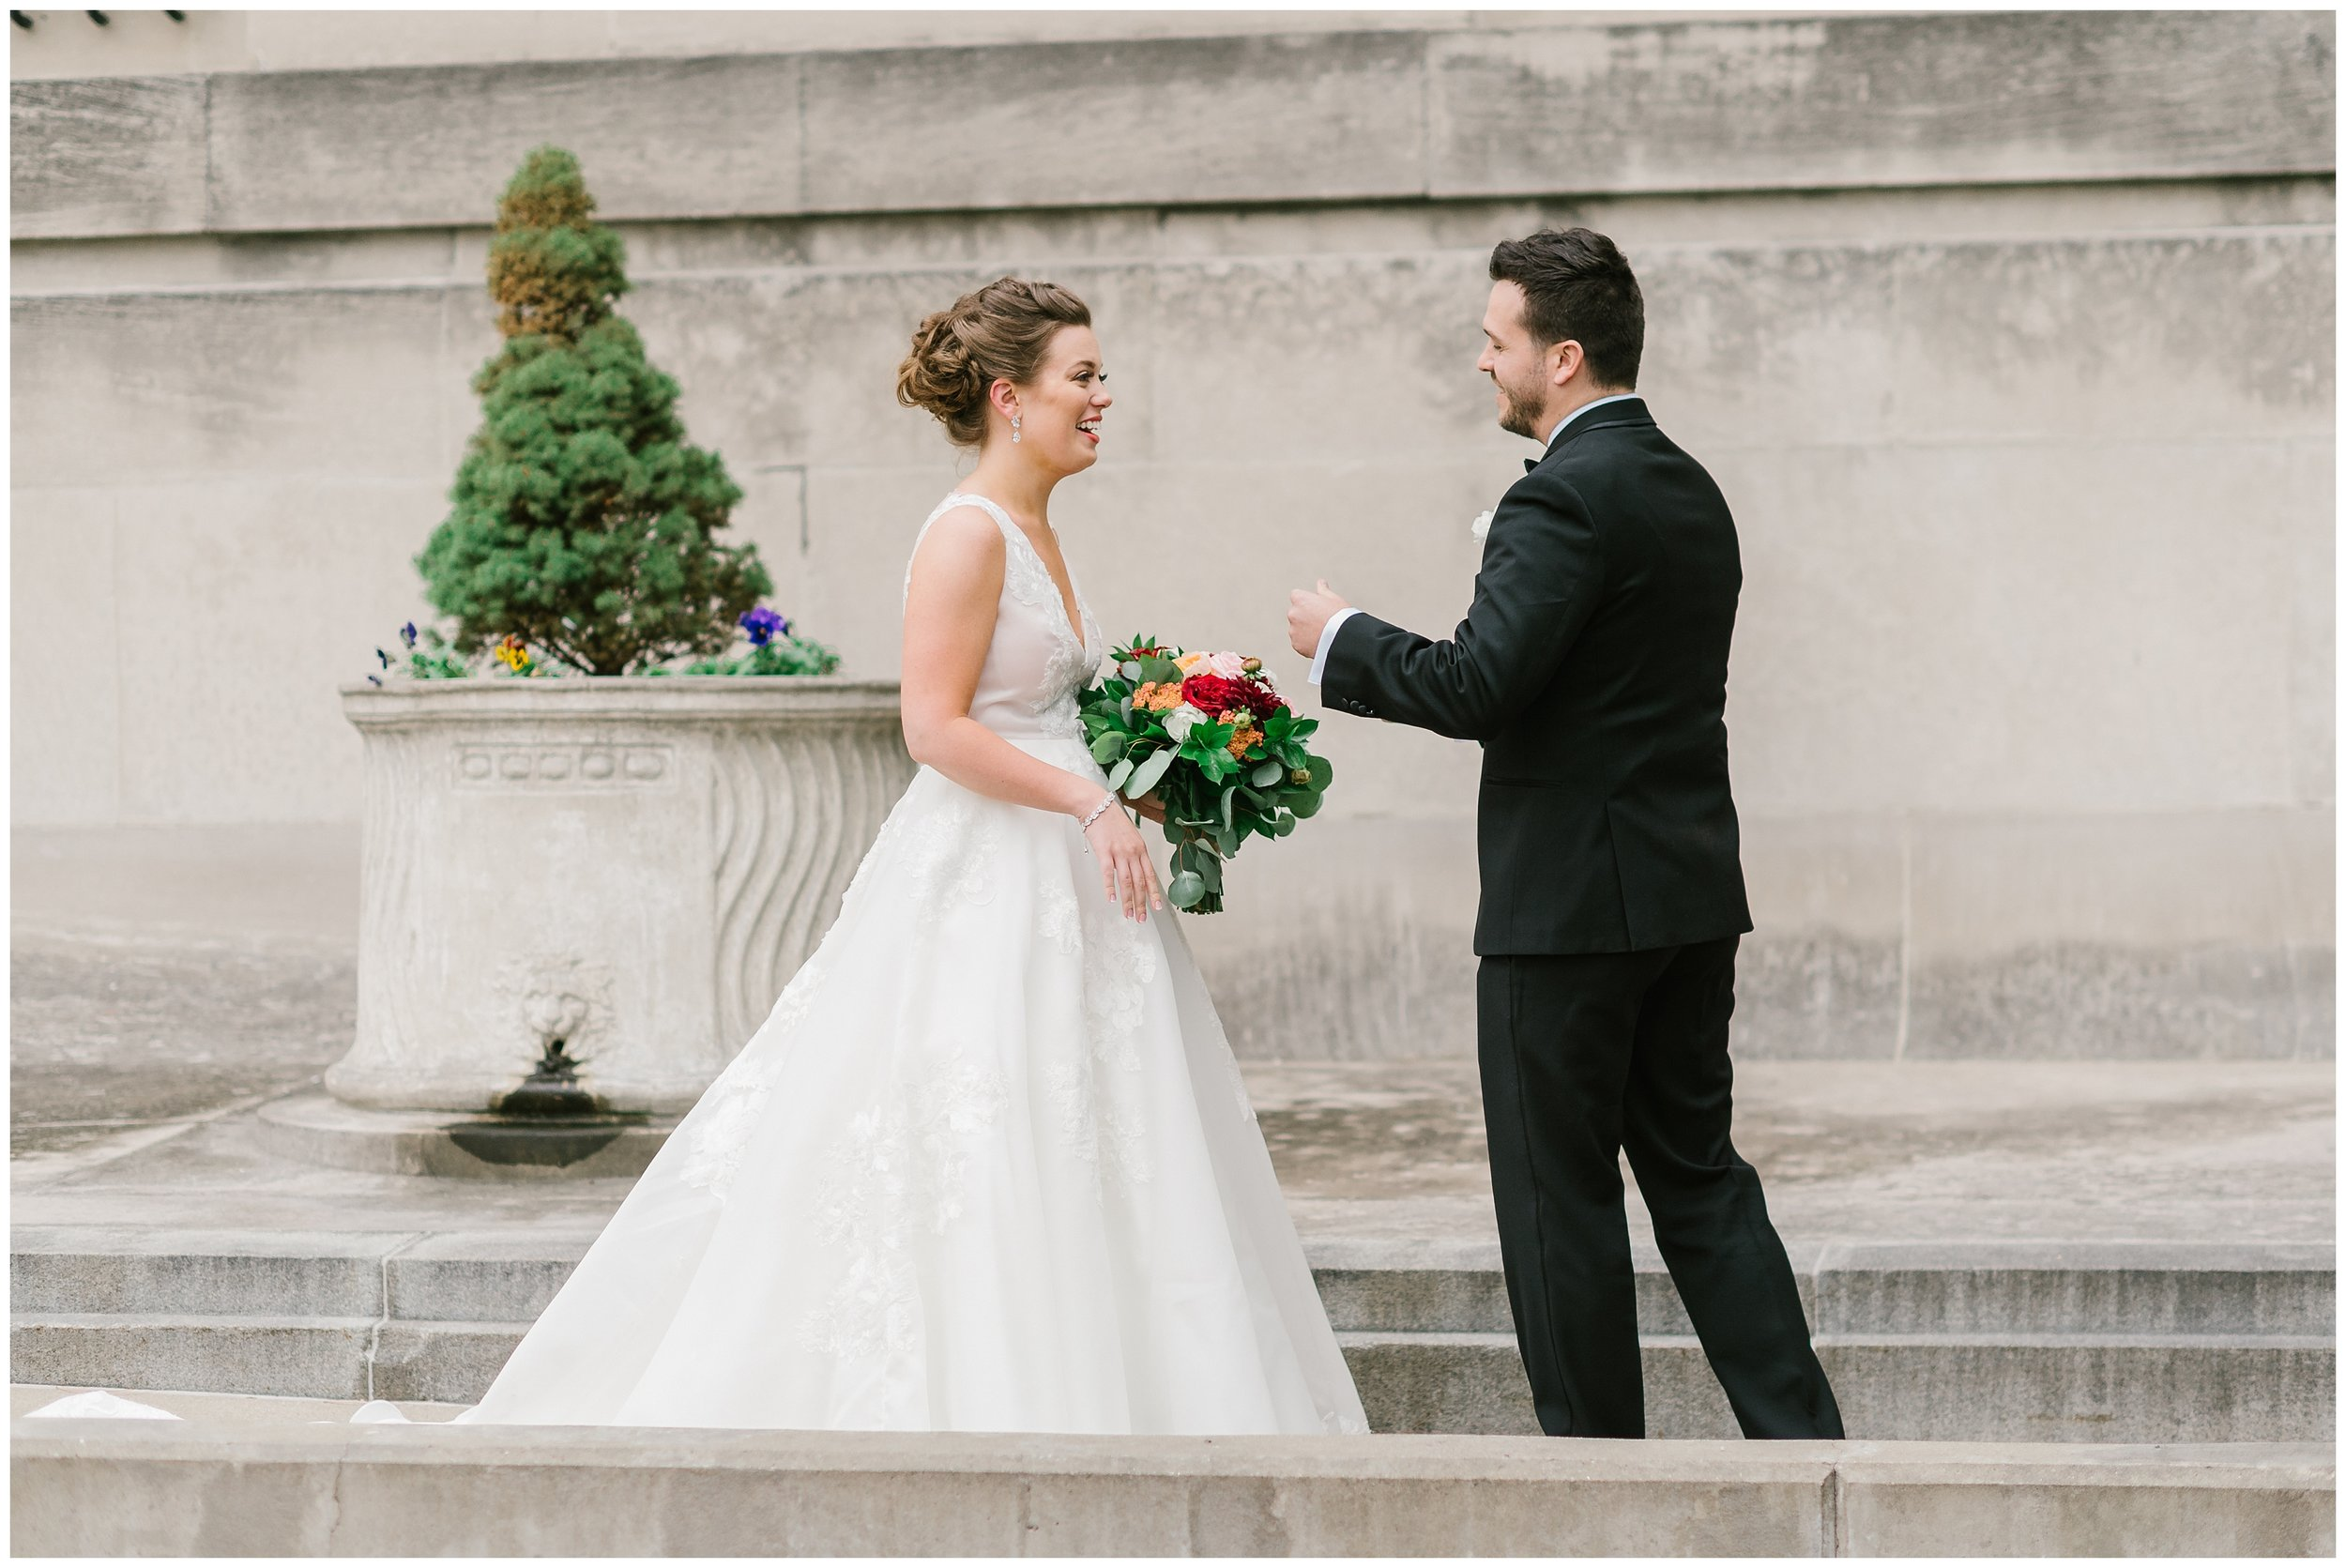 Rebecca_Shehorn_Photography_Indianapolis_Wedding_Photographer_7707.jpg